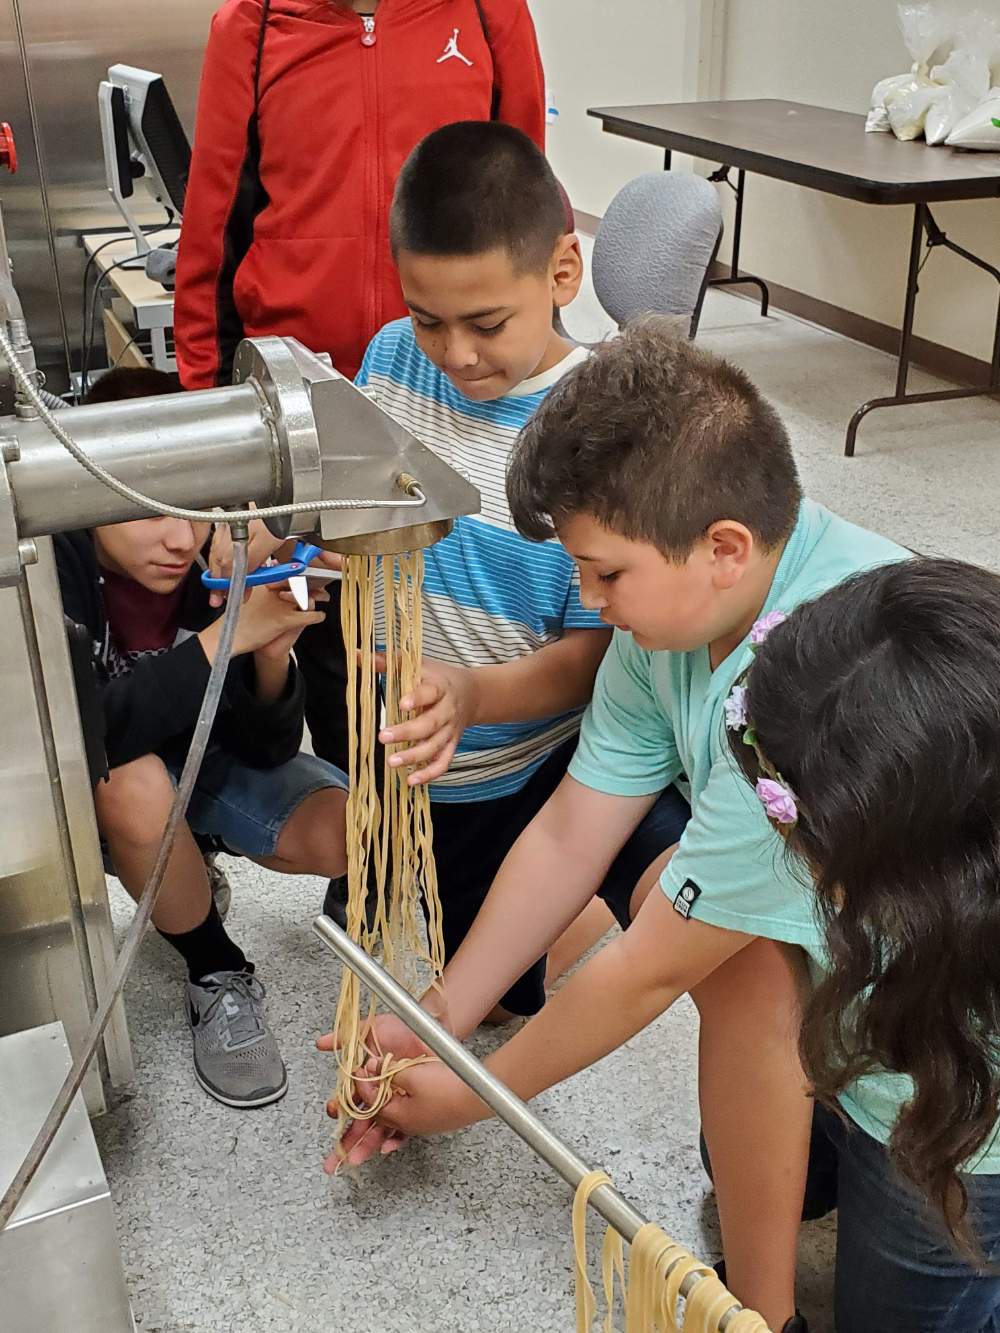 Dingle elementary school children visited the CWC in 2019 for a field trip and here they were processing whole wheat pasta with the wheat they harvested that season from their school wheat garden.